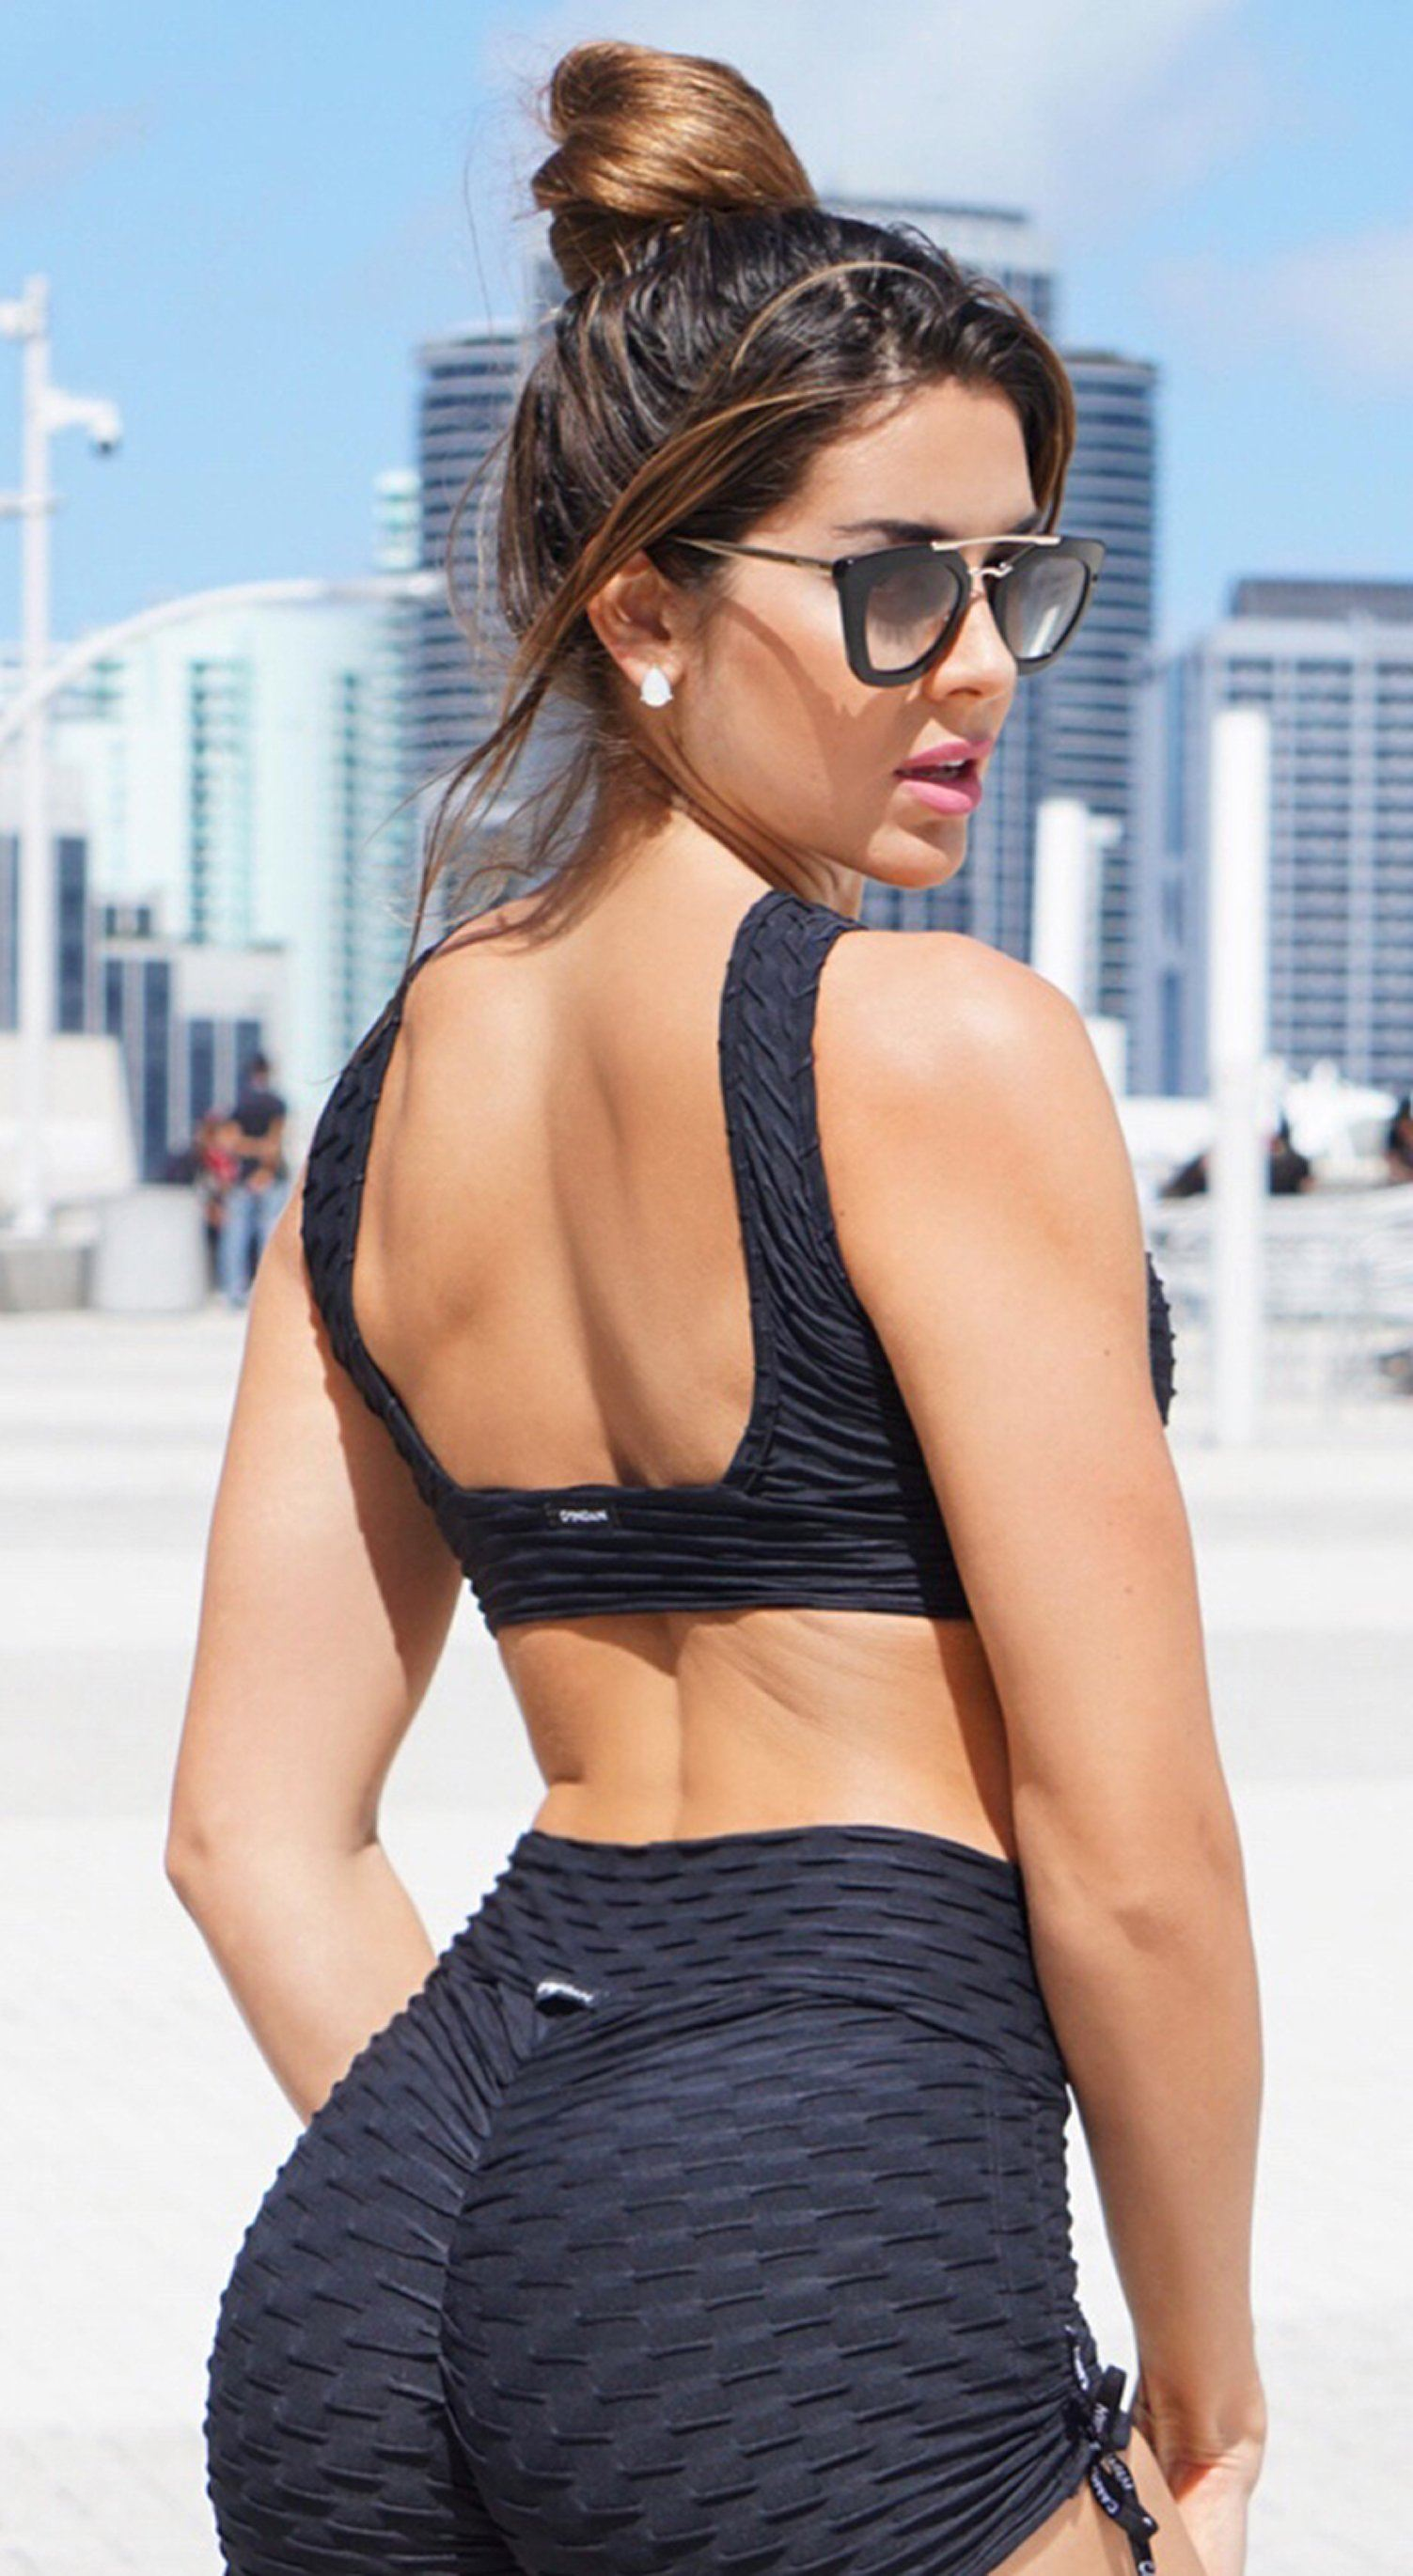 Brazilian Sports Bra - Honeycomb Cross Over Black